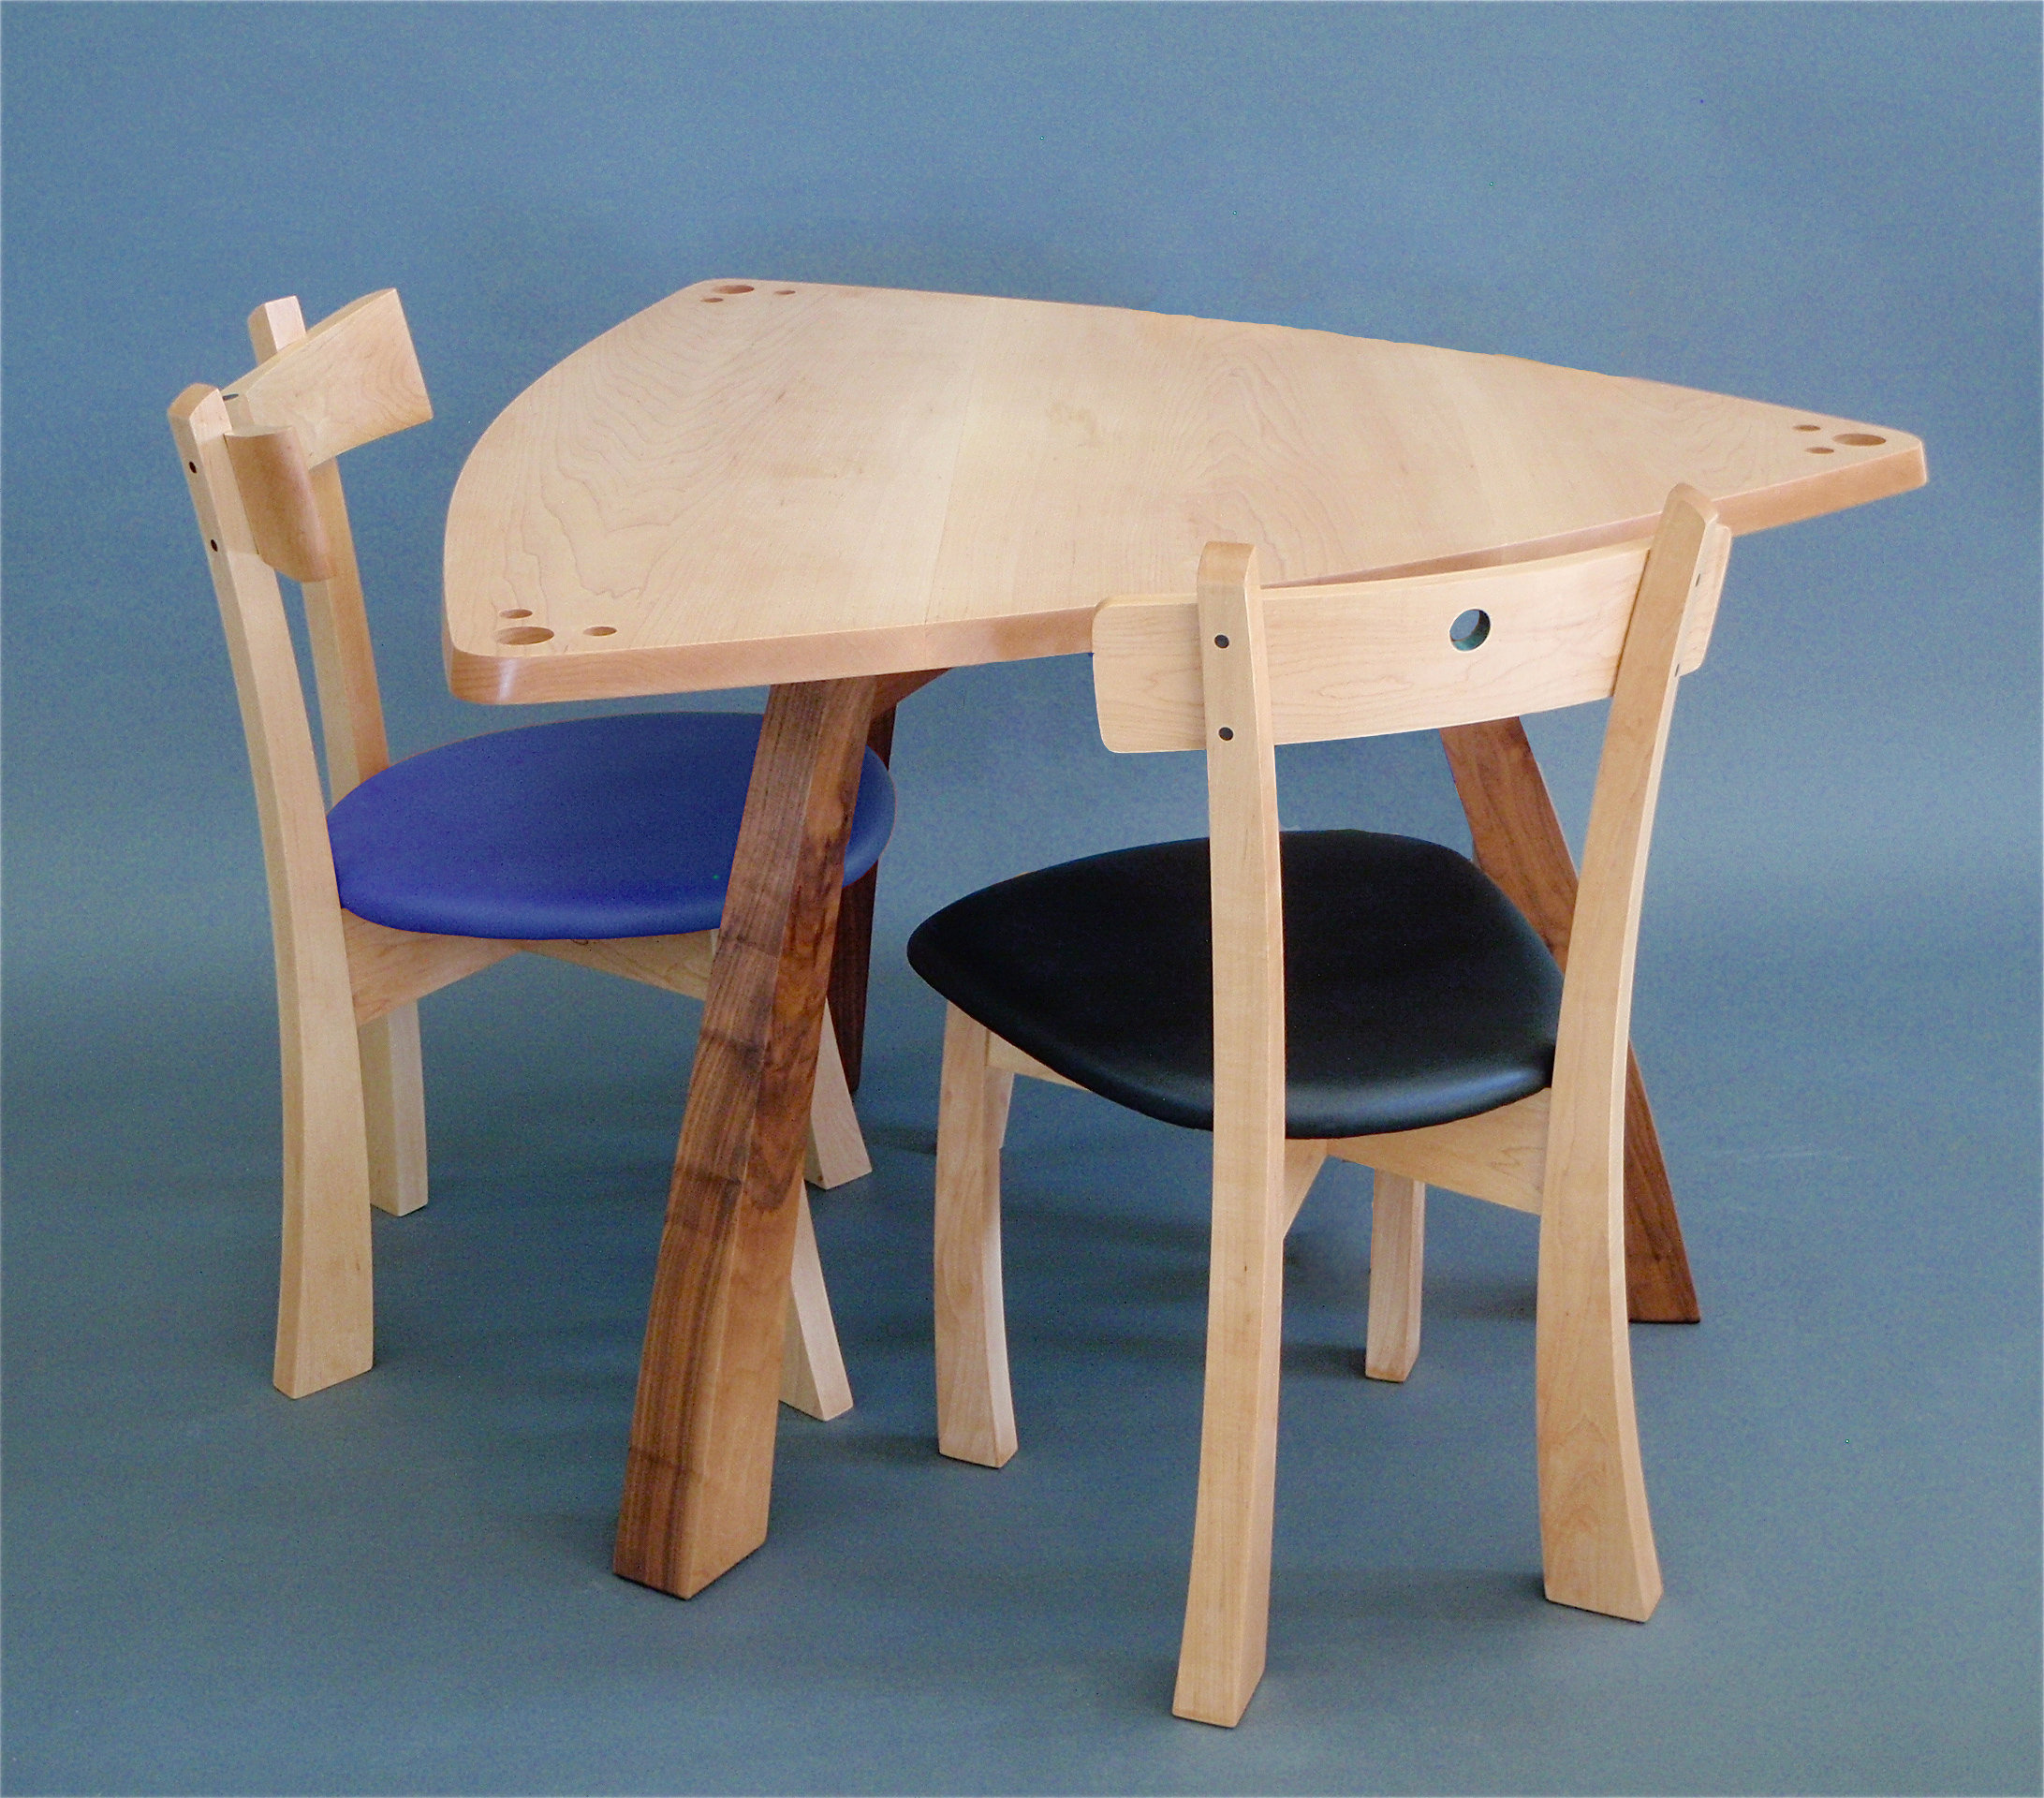 Triangle table with chairs by todd bradlee wood dining set artful